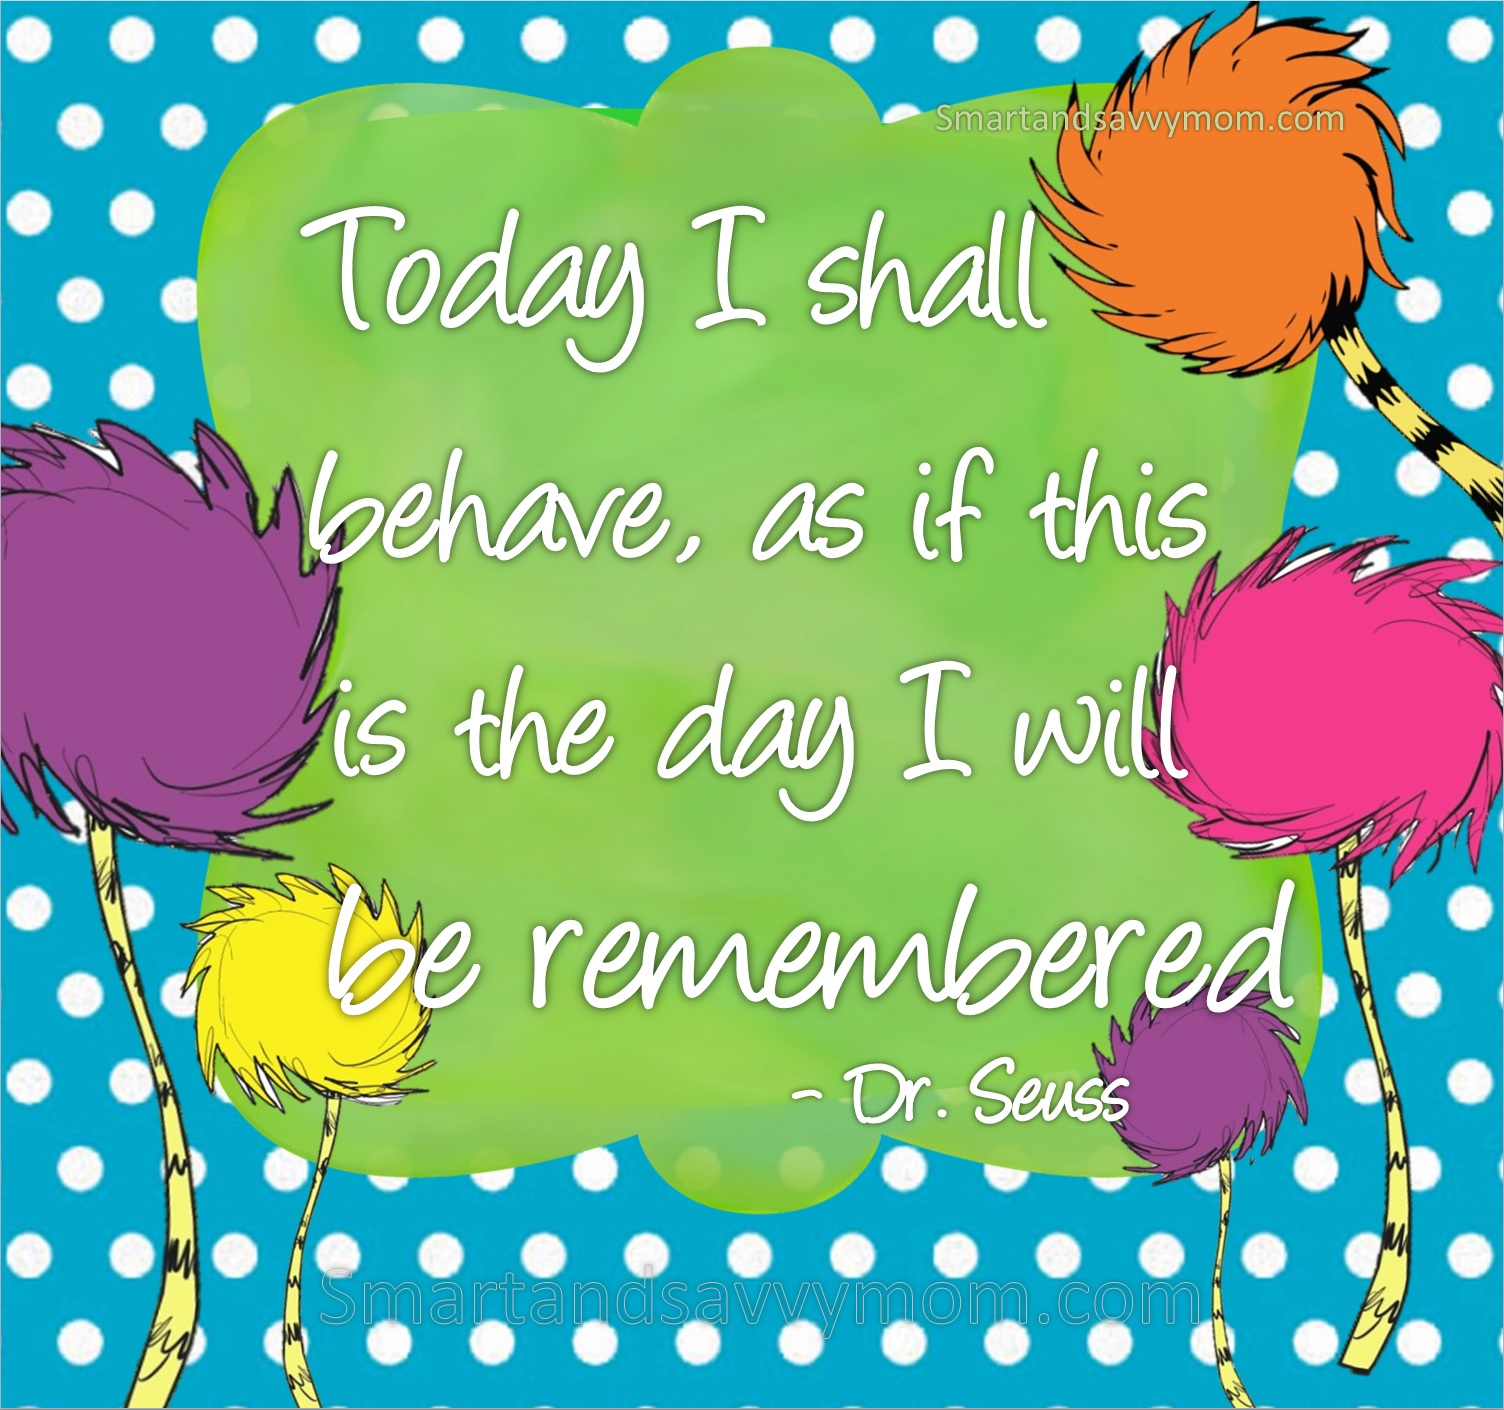 Dr. Seuss Quotes Today I Shall Behave